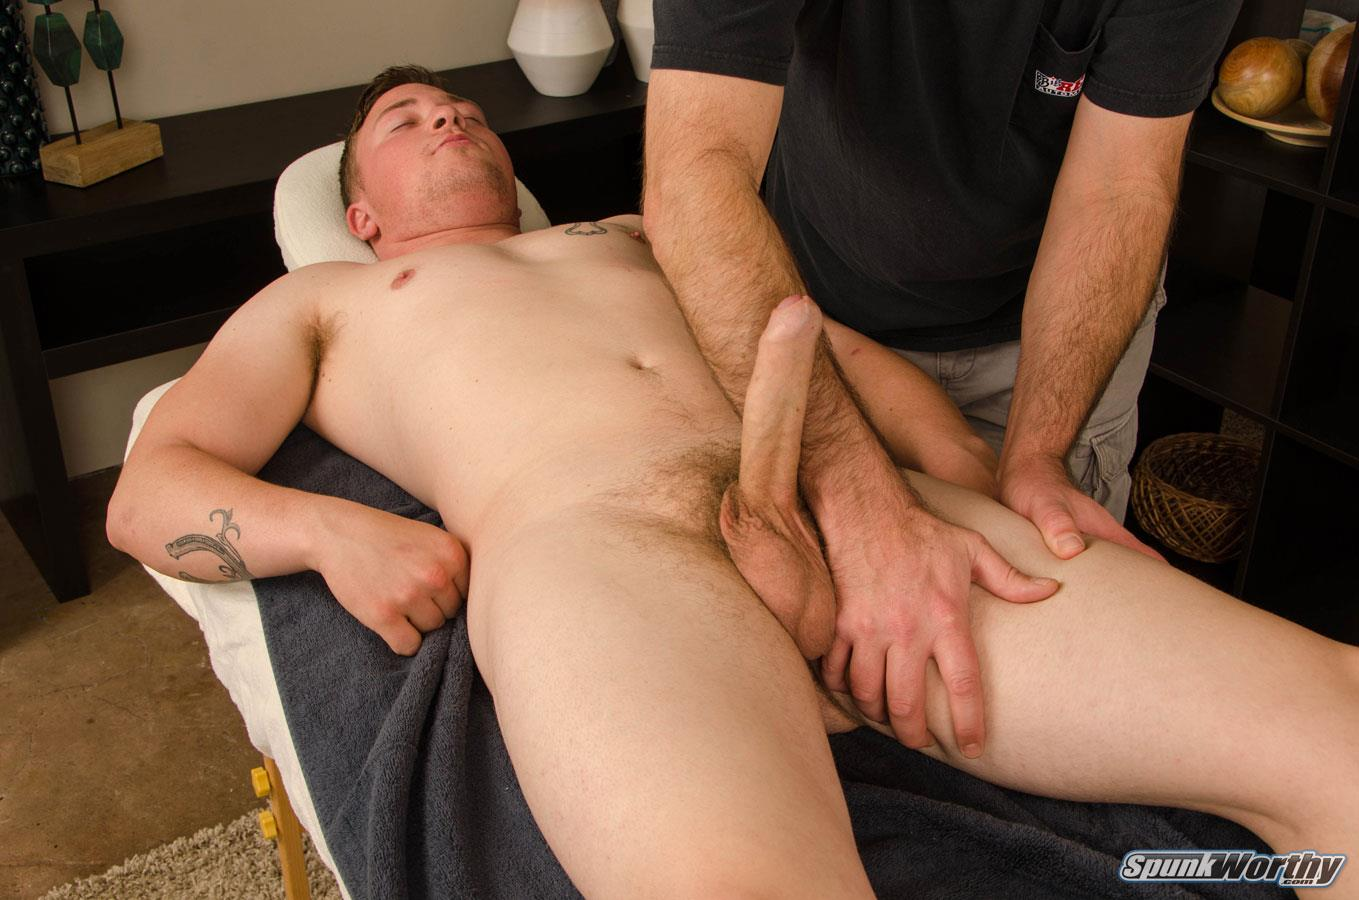 SpunkWorthy-Wayne-Marine-With-A-Big-Uncut-Cock-13 Straight Military Redneck Get His Big Uncut Cock Jerked Off